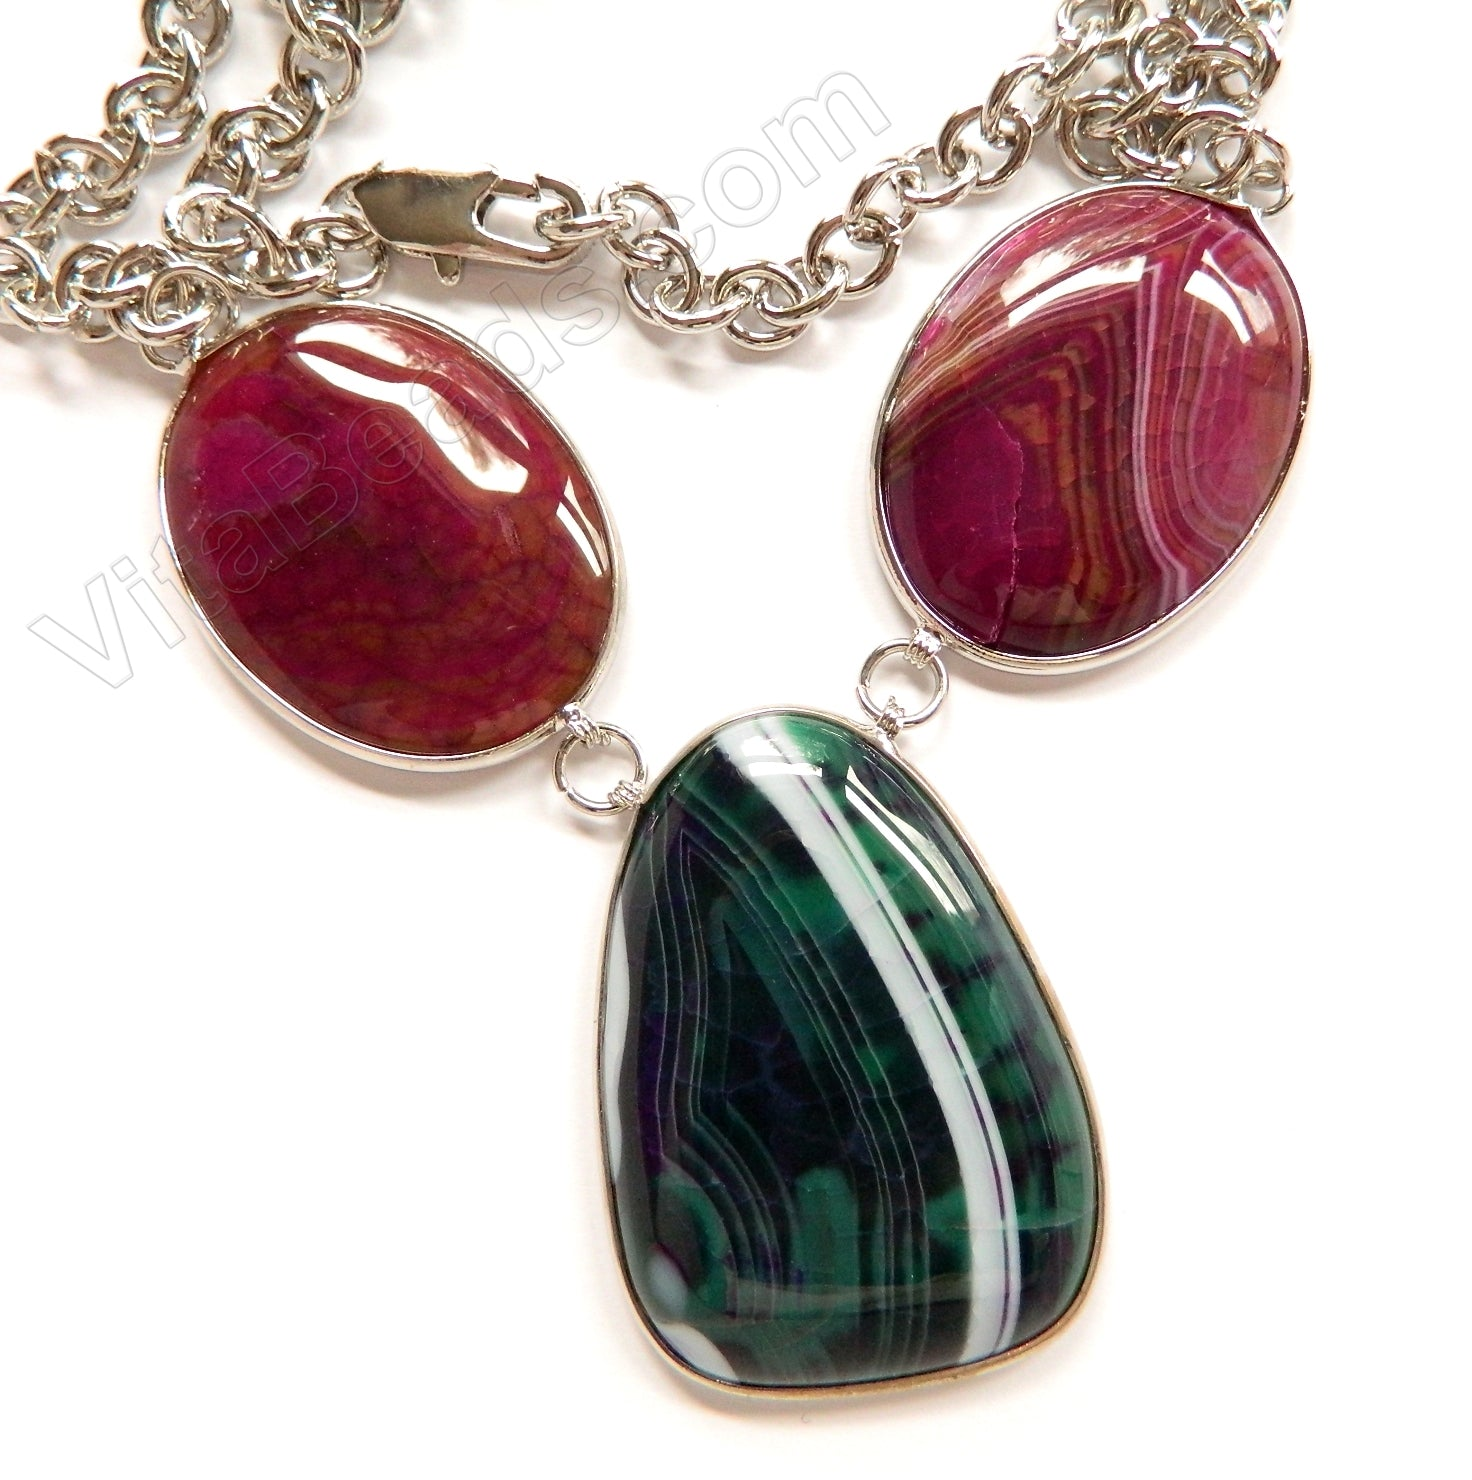 Dark Green and Fuchsia Fire Agate 3 Piece Set Necklace 26""